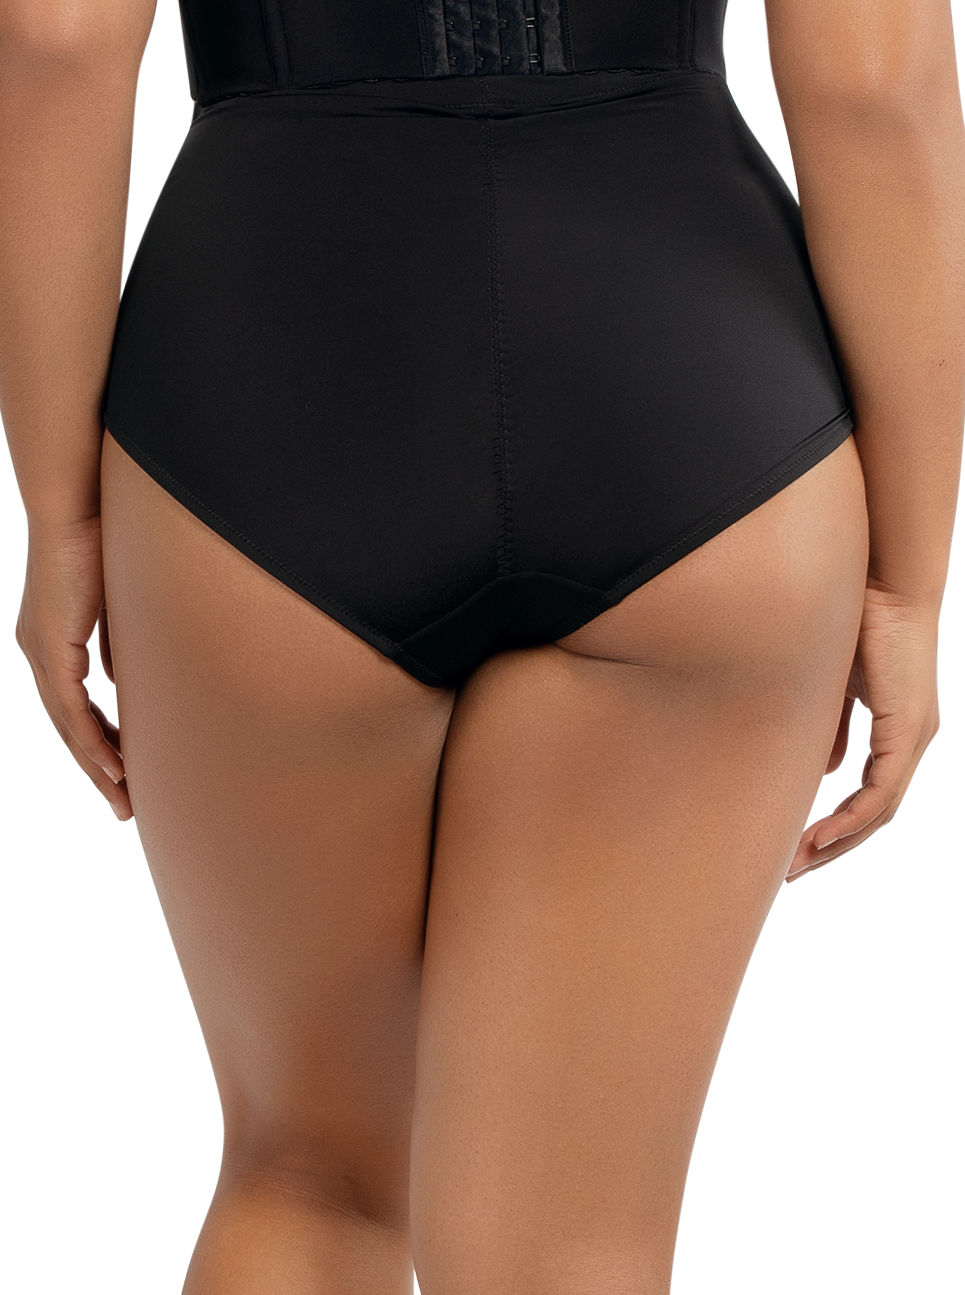 PARFAIT Elissa HighwaistedSmoothControlBoylegP50155 Black Back - Elissa Highwaisted Control Boyleg Black P50155